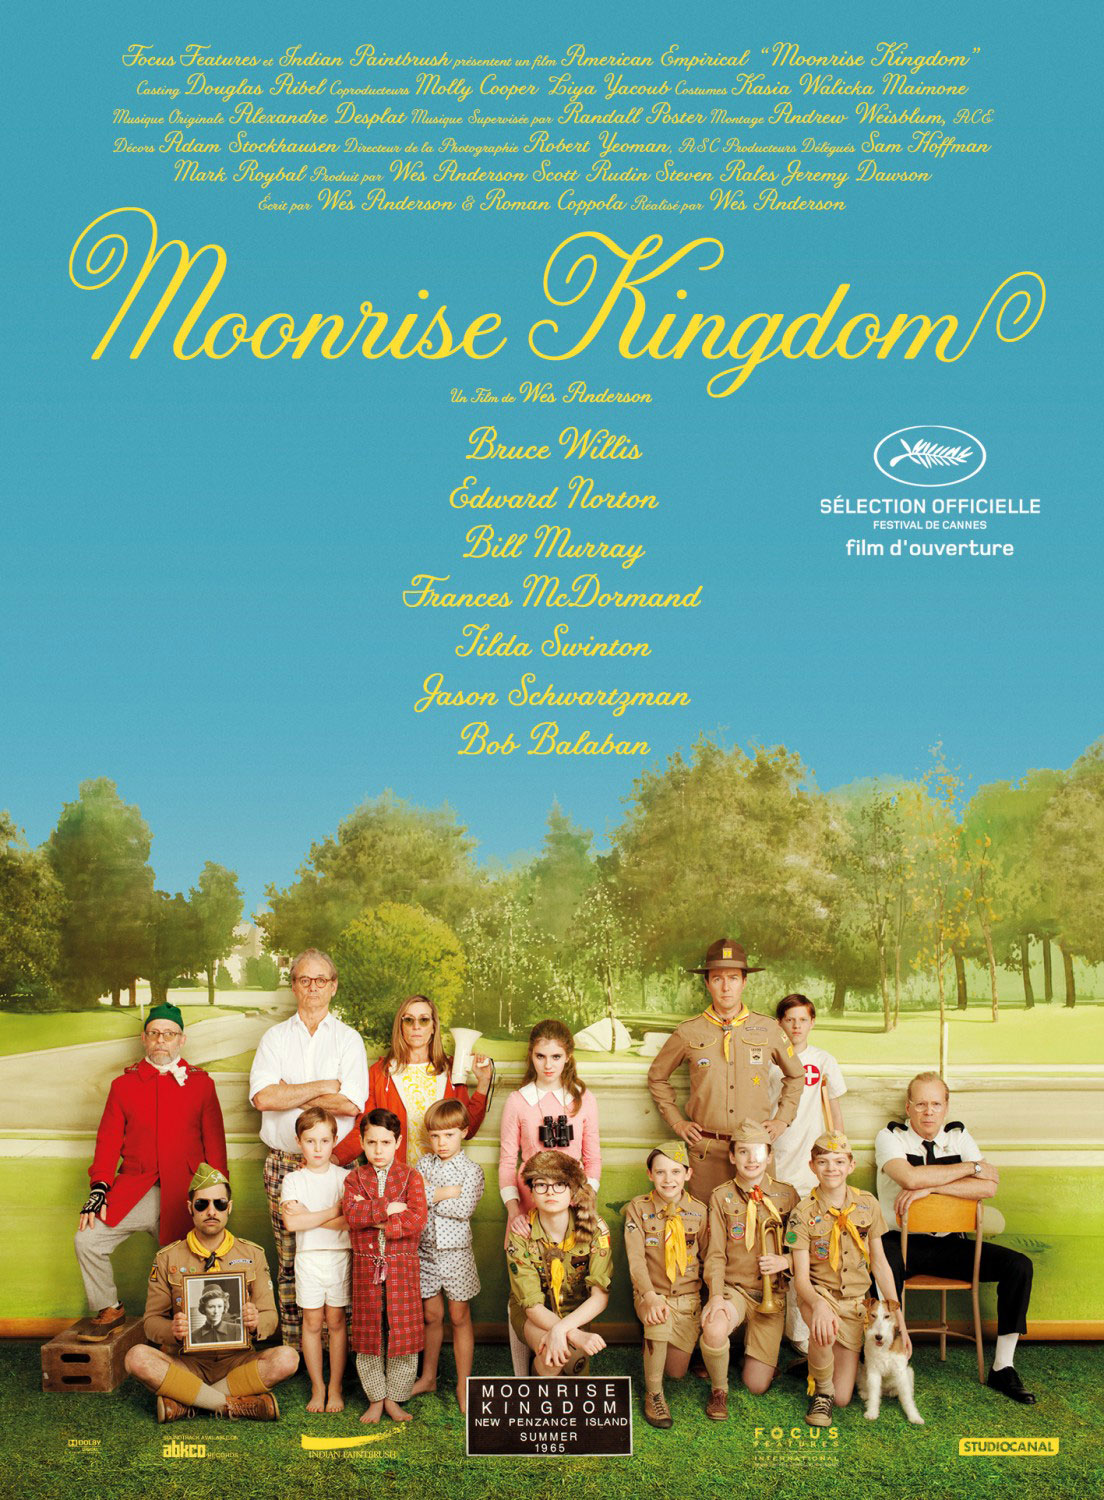 http://descubrepelis.blogspot.com/2012/06/moonrise-kingdom.html